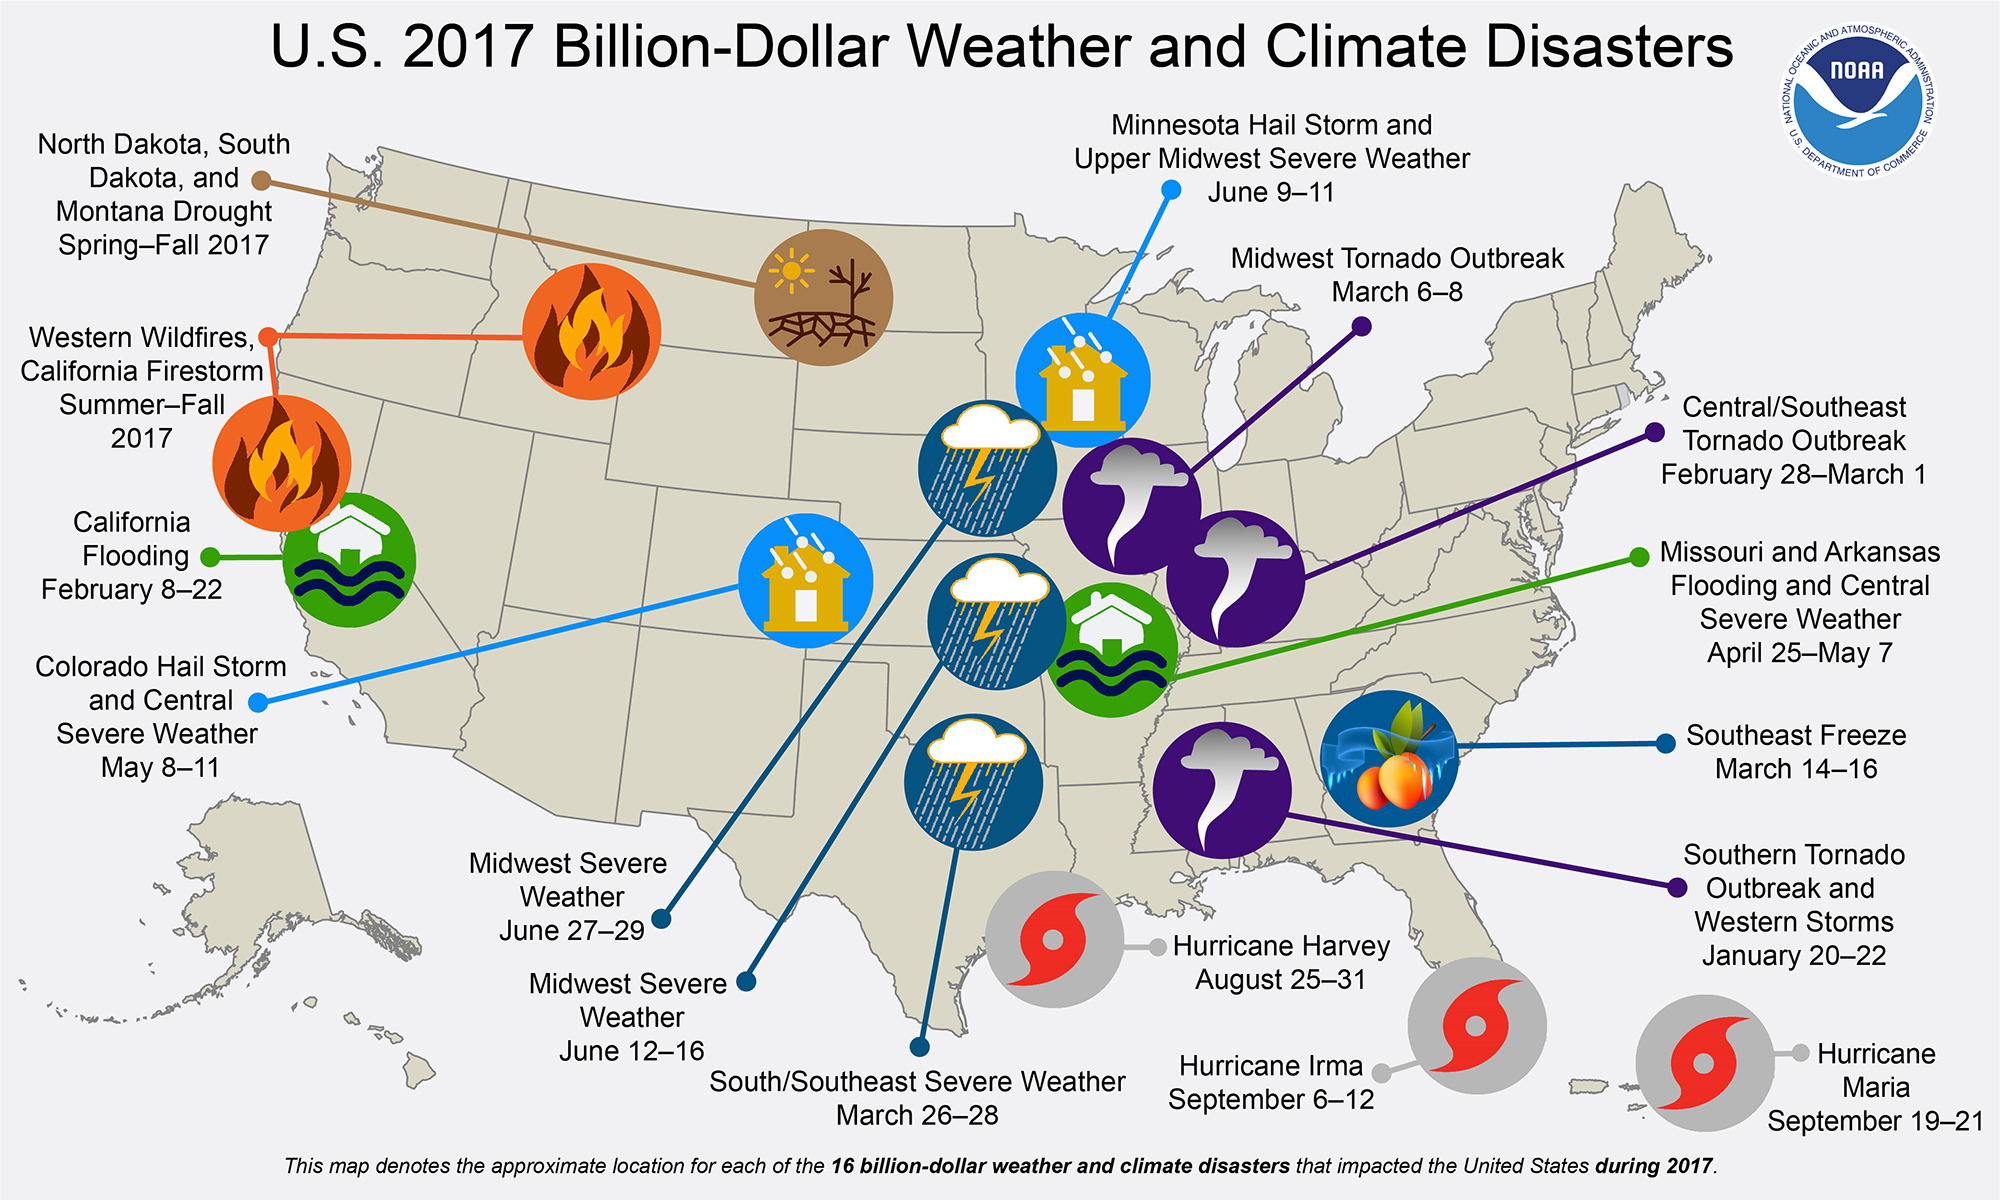 U.S. 2017 Billion-Dollar Weather and Climate Disasters Map